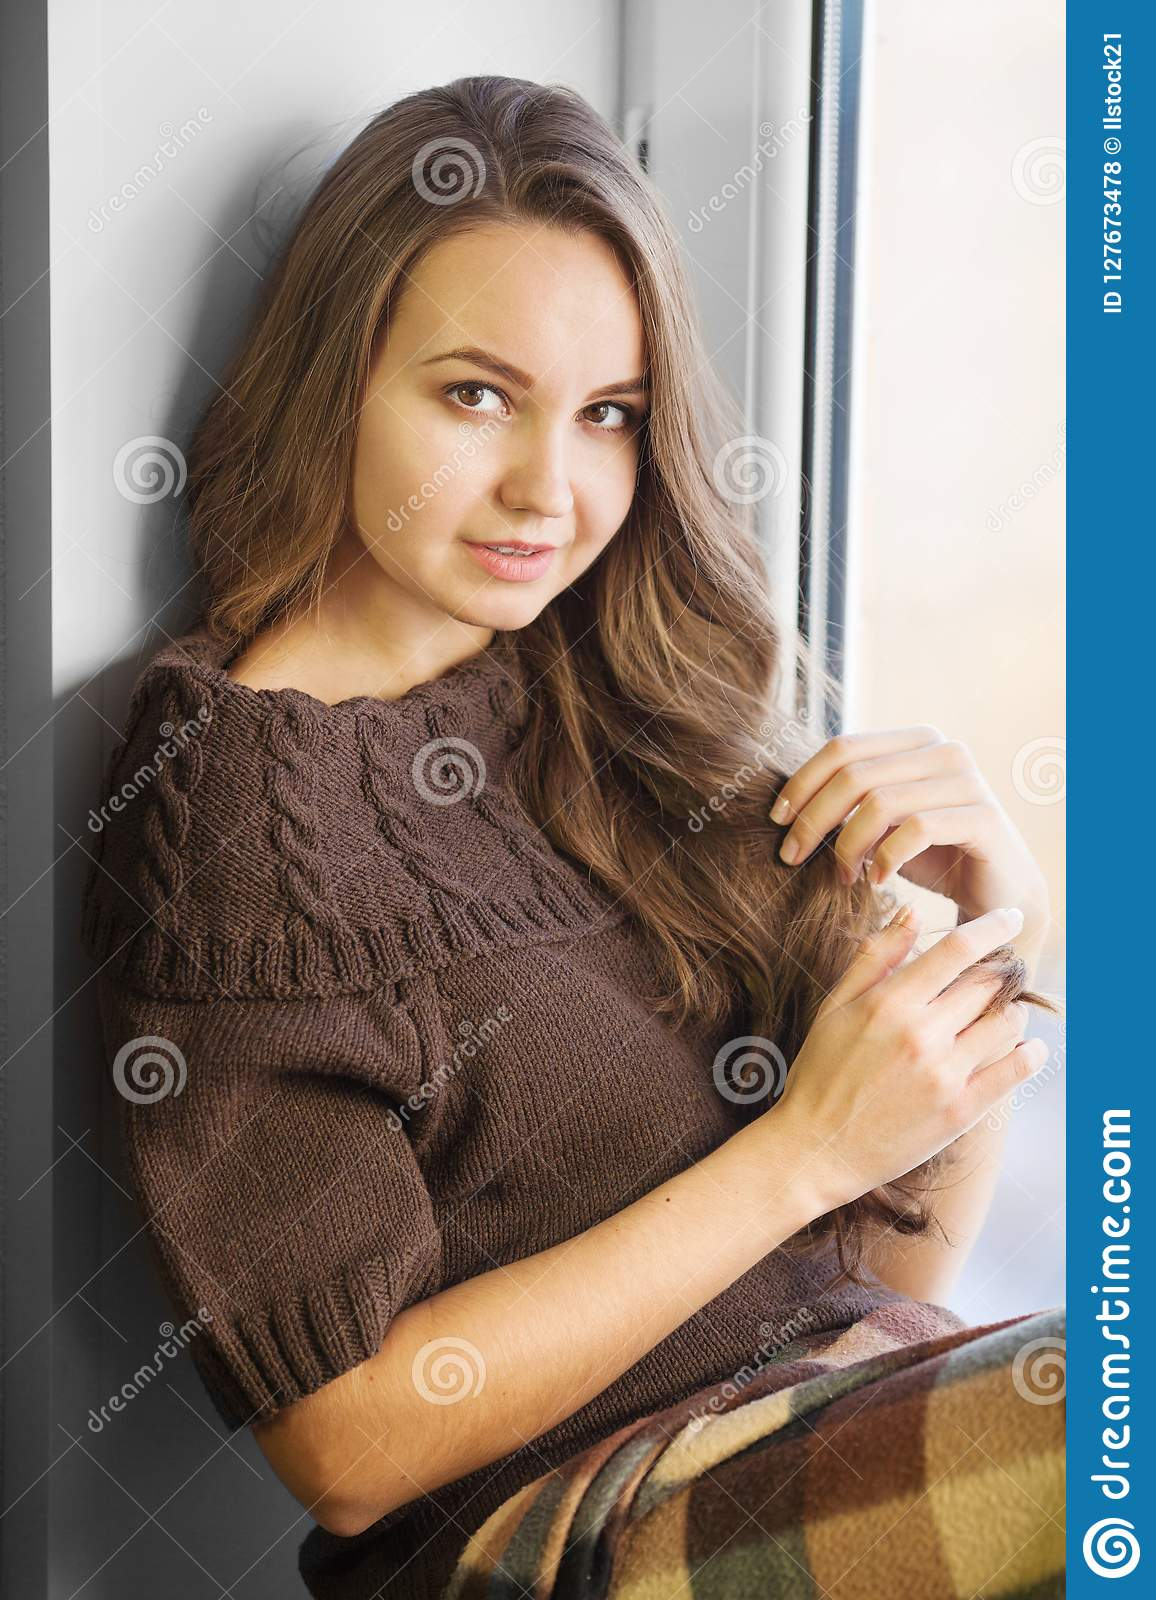 Brown Haired Woman Sitting On Window Sill And Posing Stock Photo